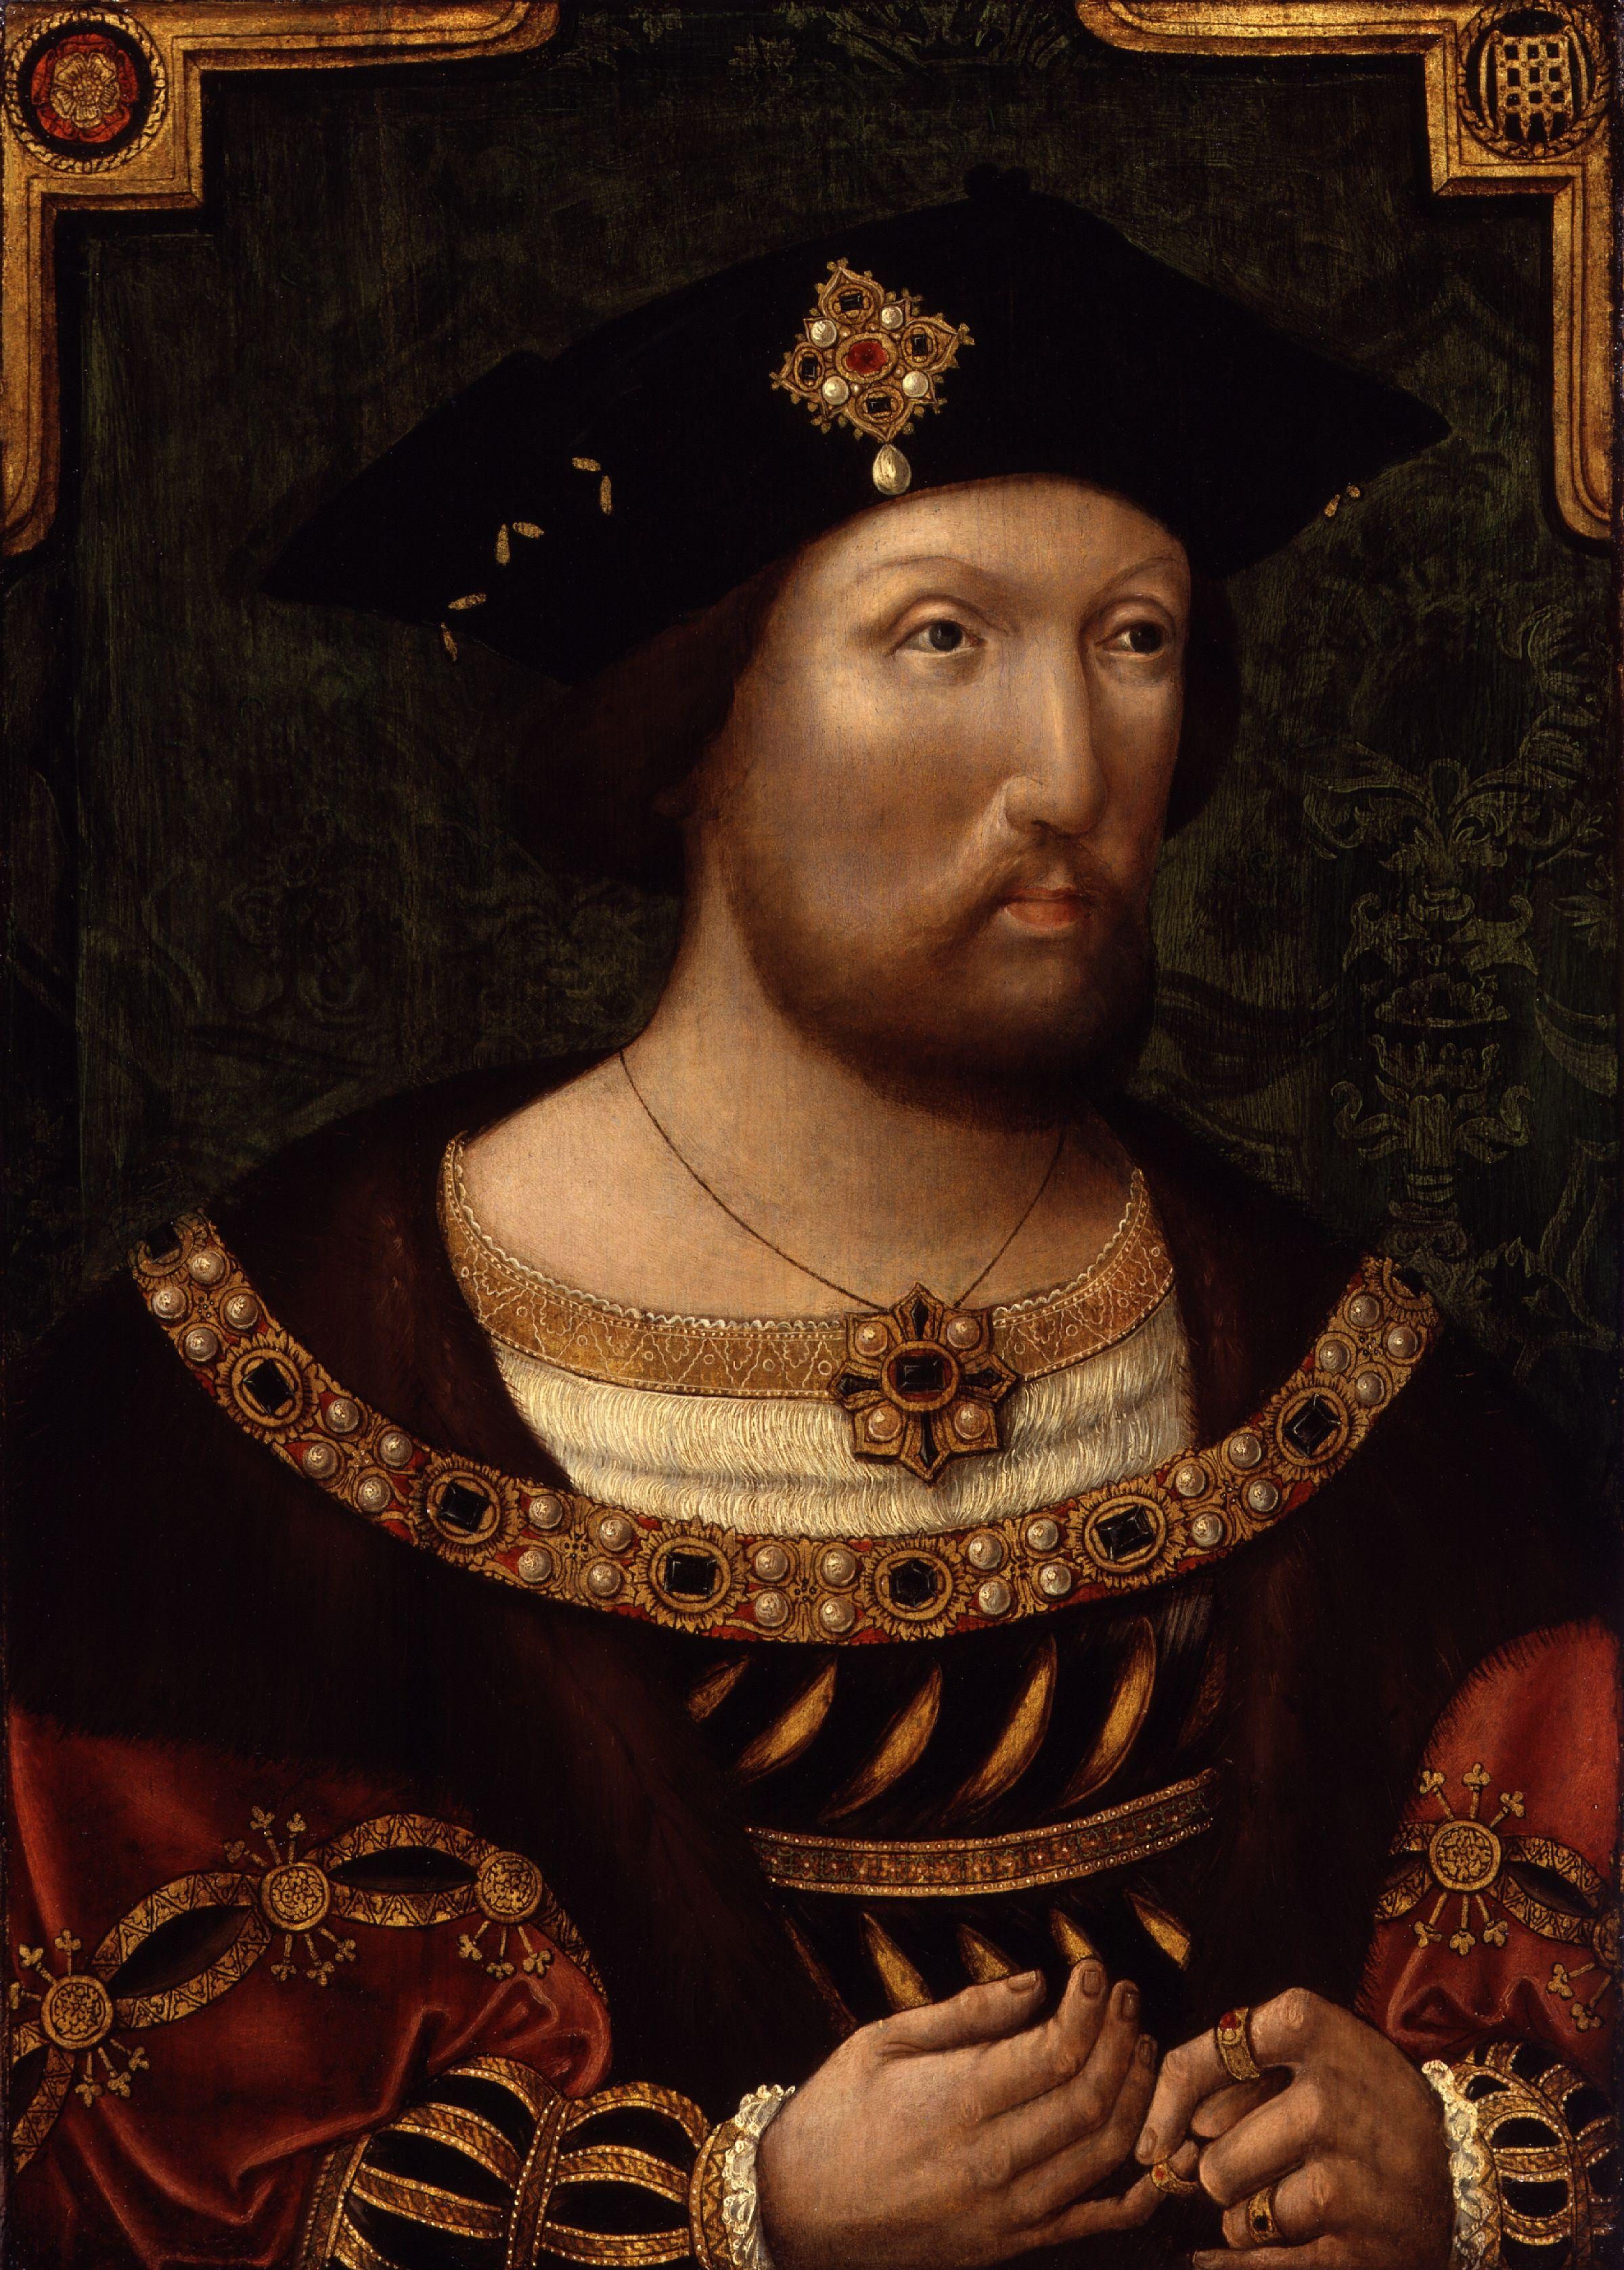 was henry vii a good king Henry viii: henry viii, king of england he promised england the joys of spring after the long winter of henry vii's reign he was the king's good friend.